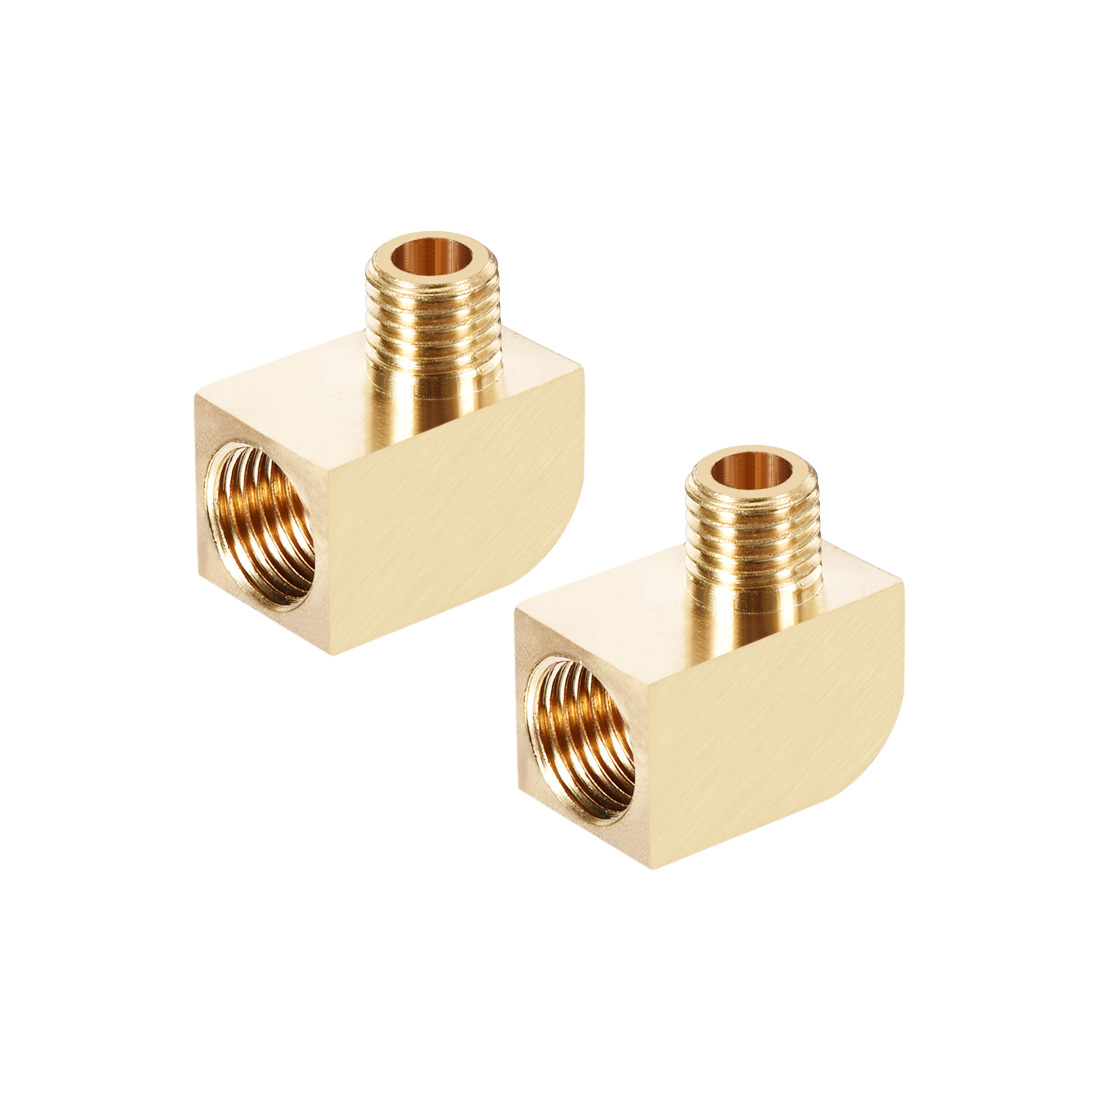 Brass Pipe Fitting 90 Degree Barstock Street Elbow M8 Male xM10 Female Pipe 2pcs